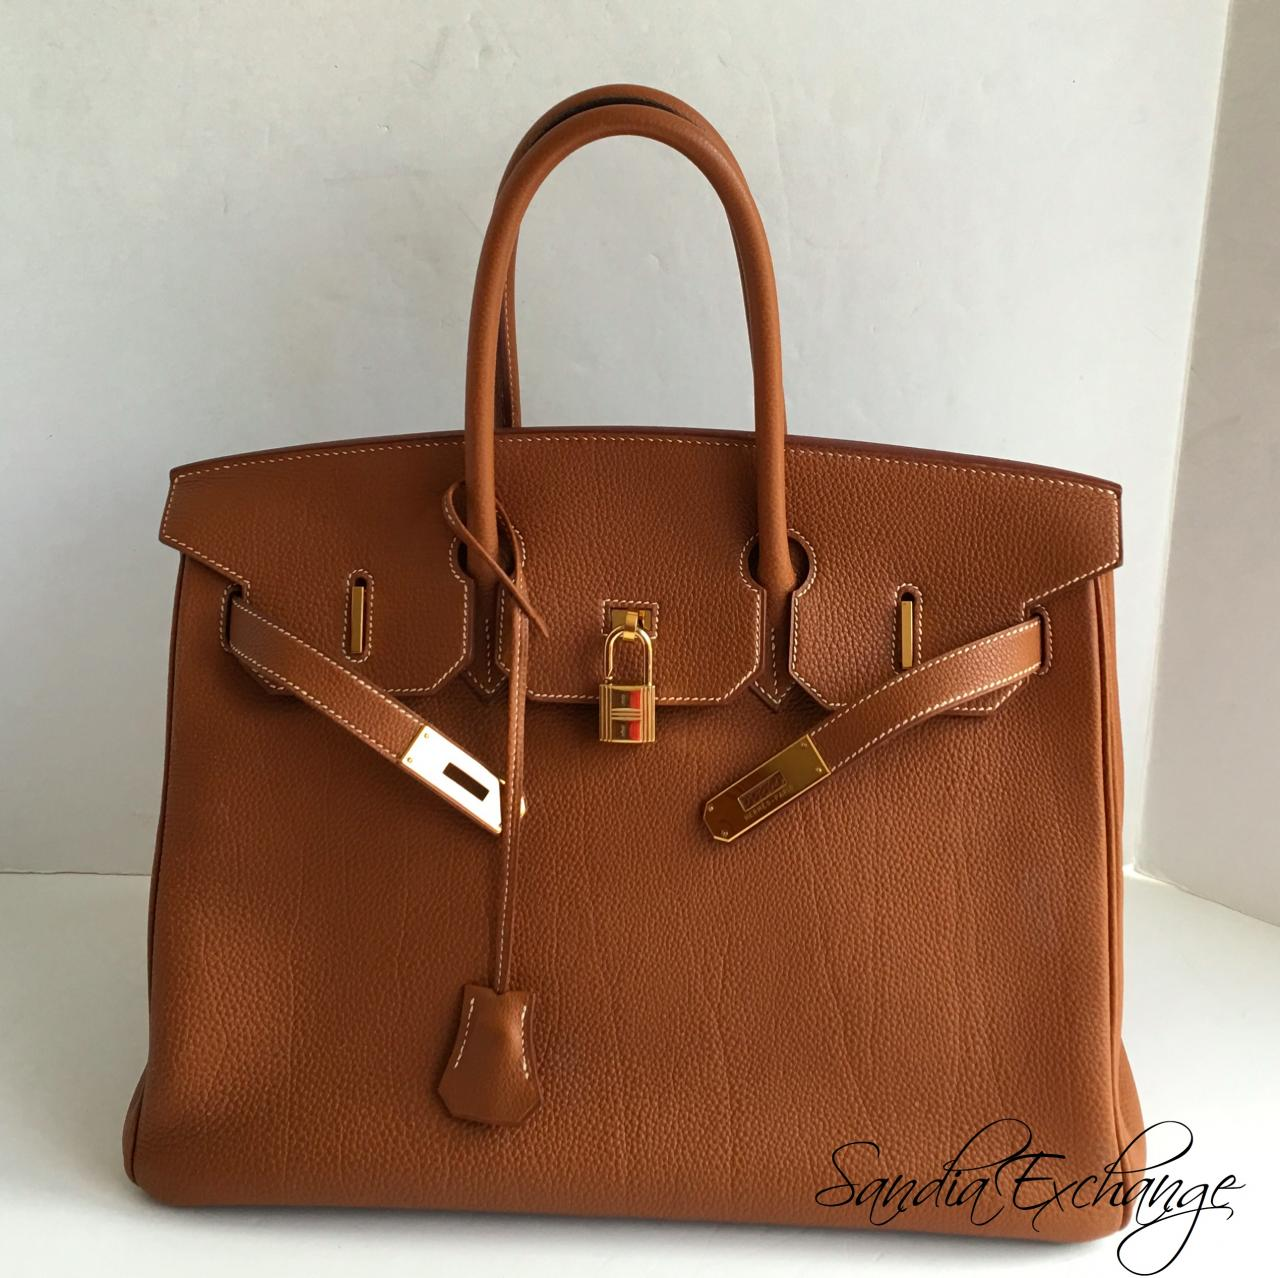 outlet bags usa fake - hermes-birkin-35-cm-gold-togo-gold-hardware-authentic-herm-s-3.jpg